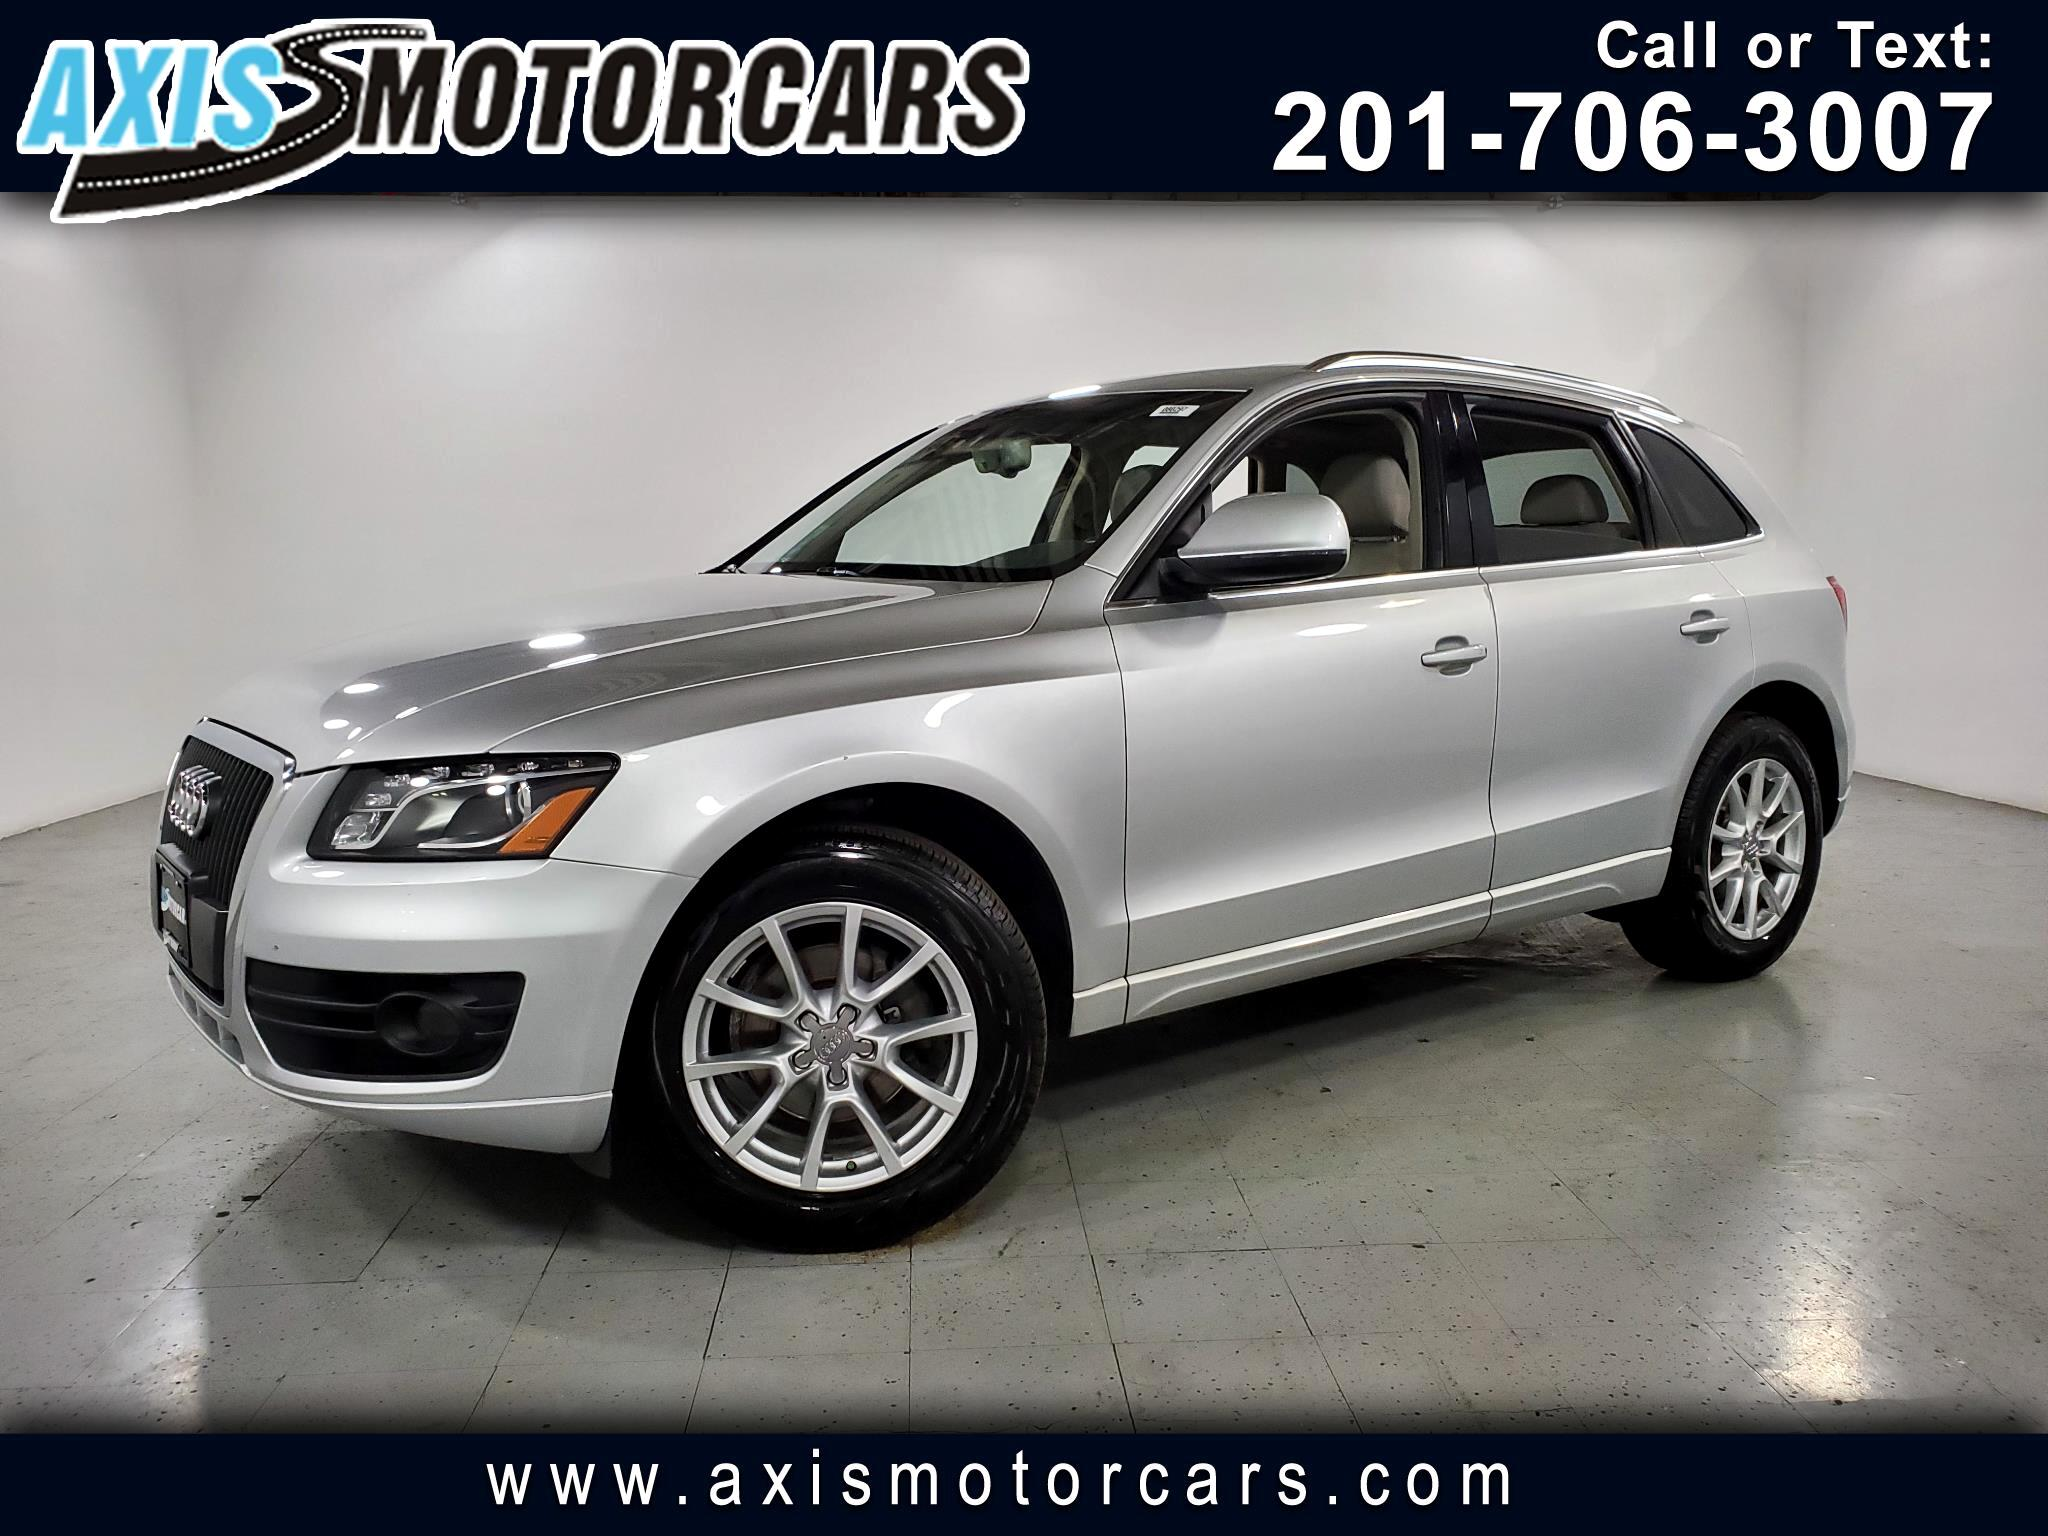 2012 Audi Q5 Premium Plus w/Bang and Olufsen Sound